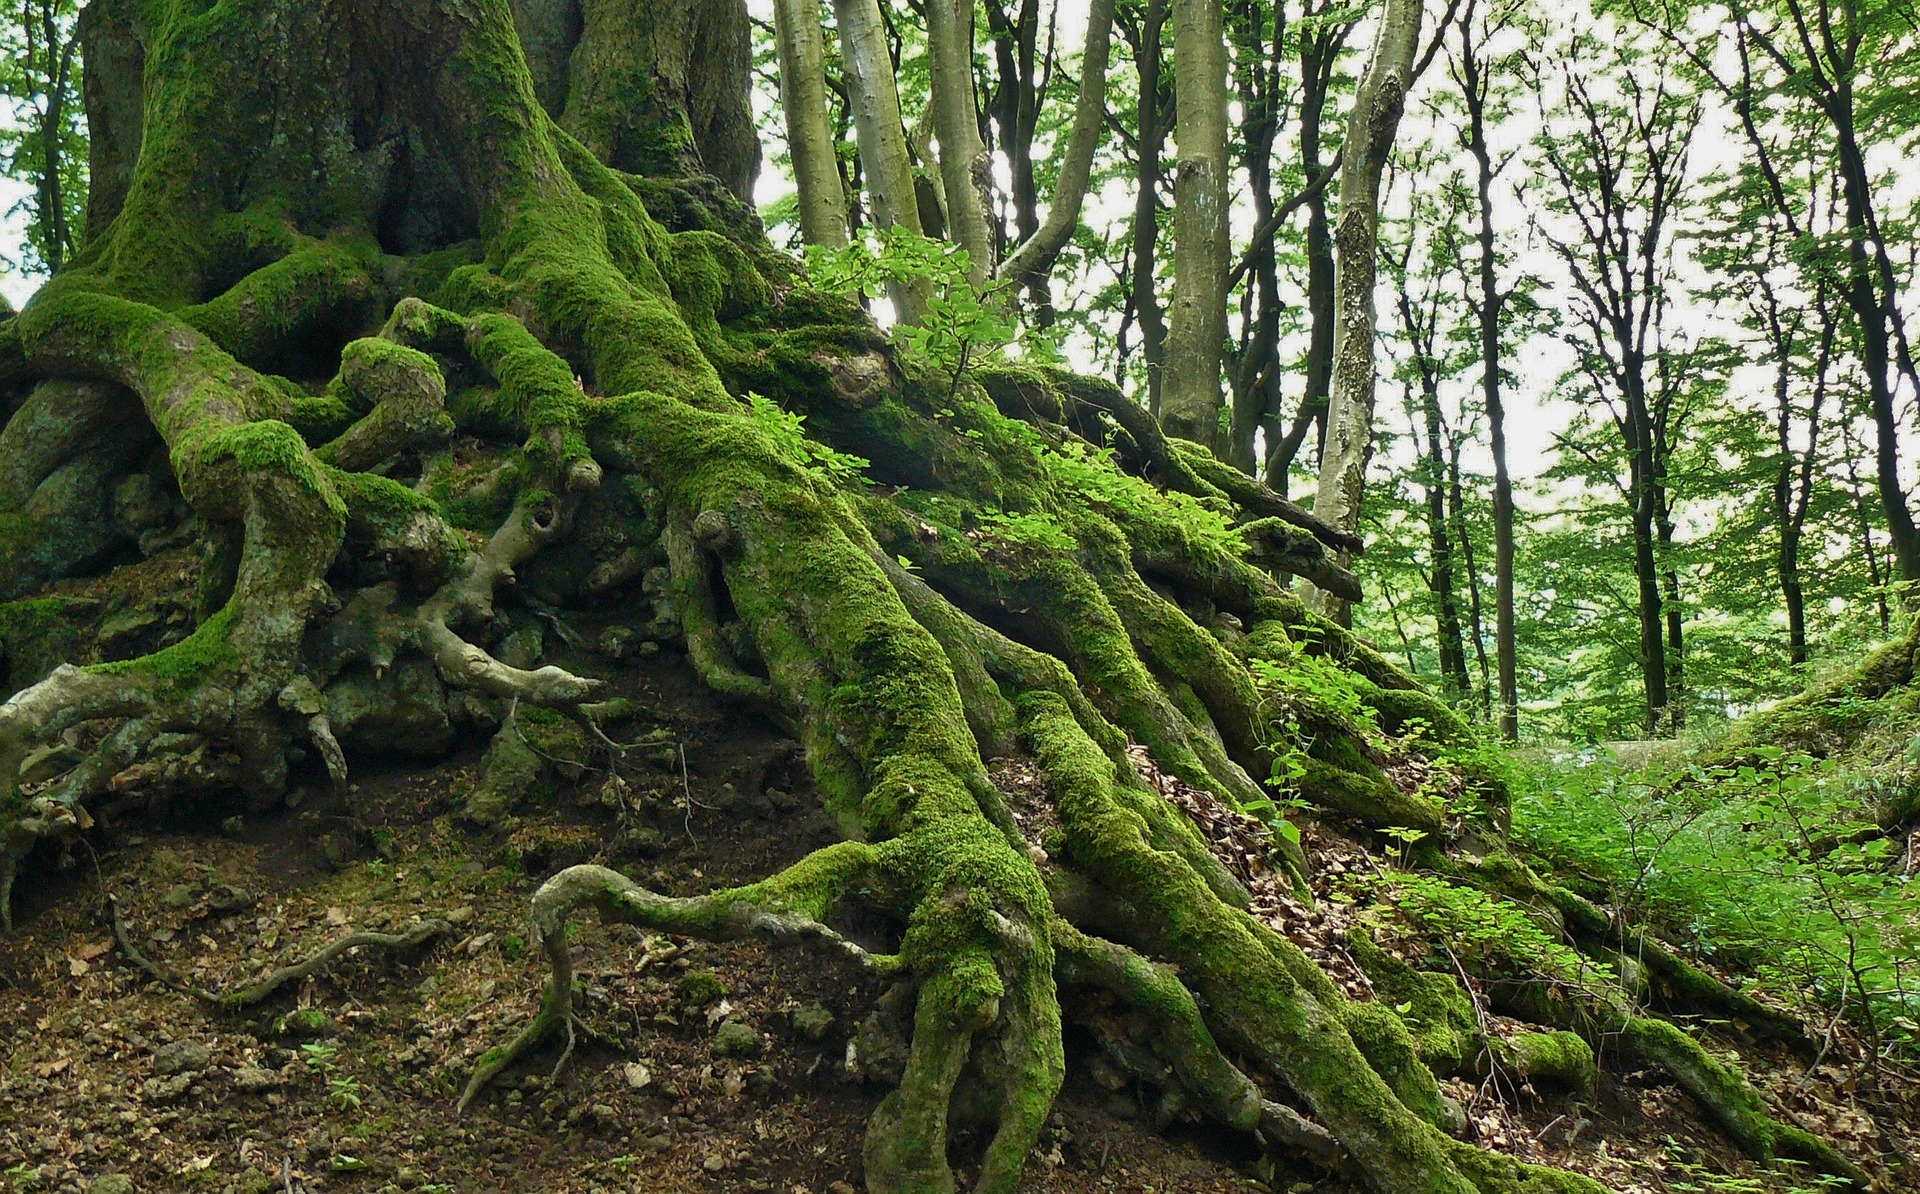 Roots, Forest, Jungle, Nature, Plant, HQ Photo